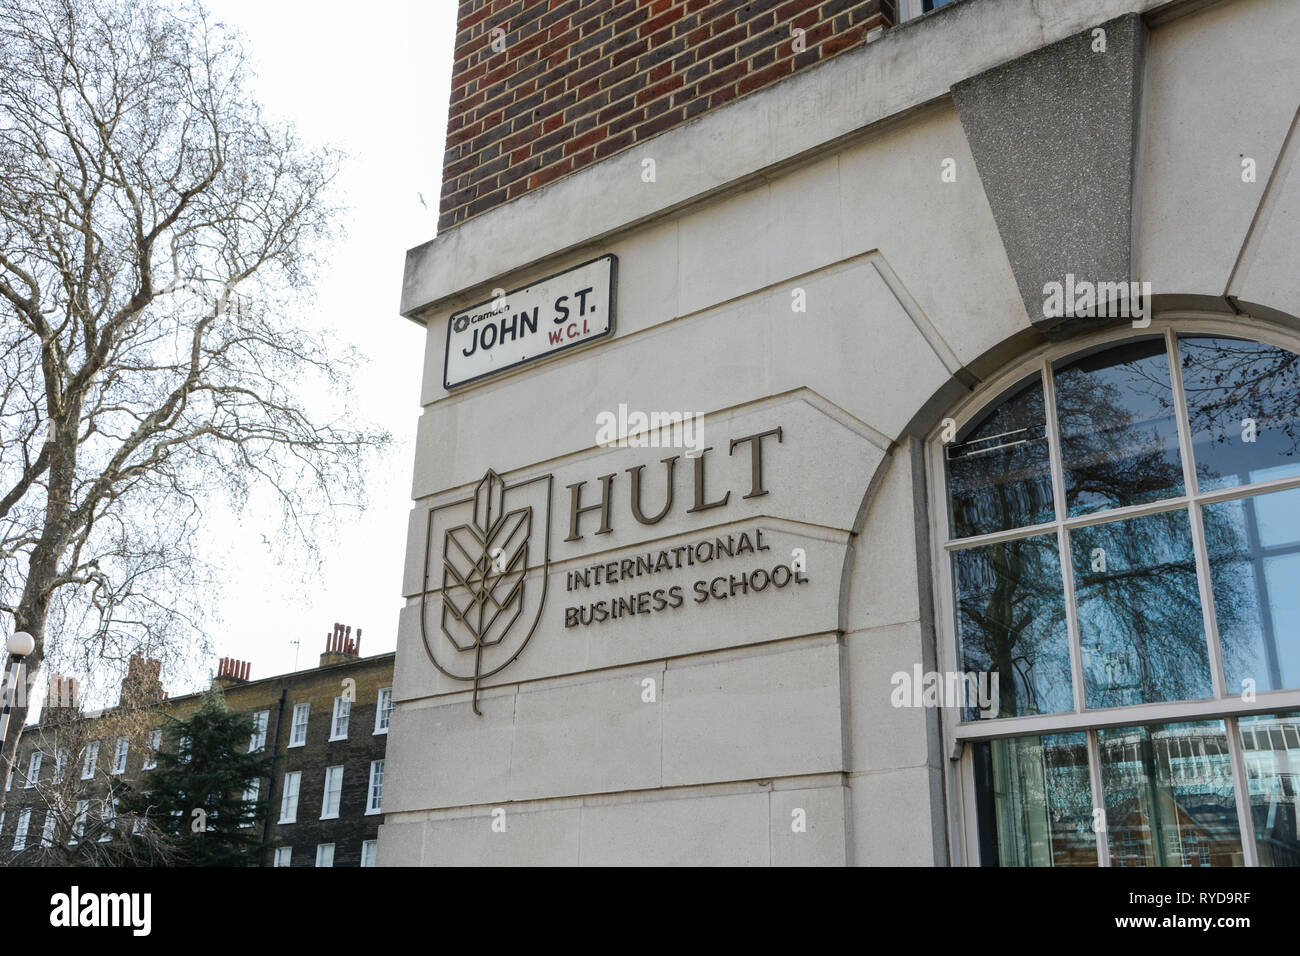 Hult International Business School, John Street, London, WC1, UK - Stock Image